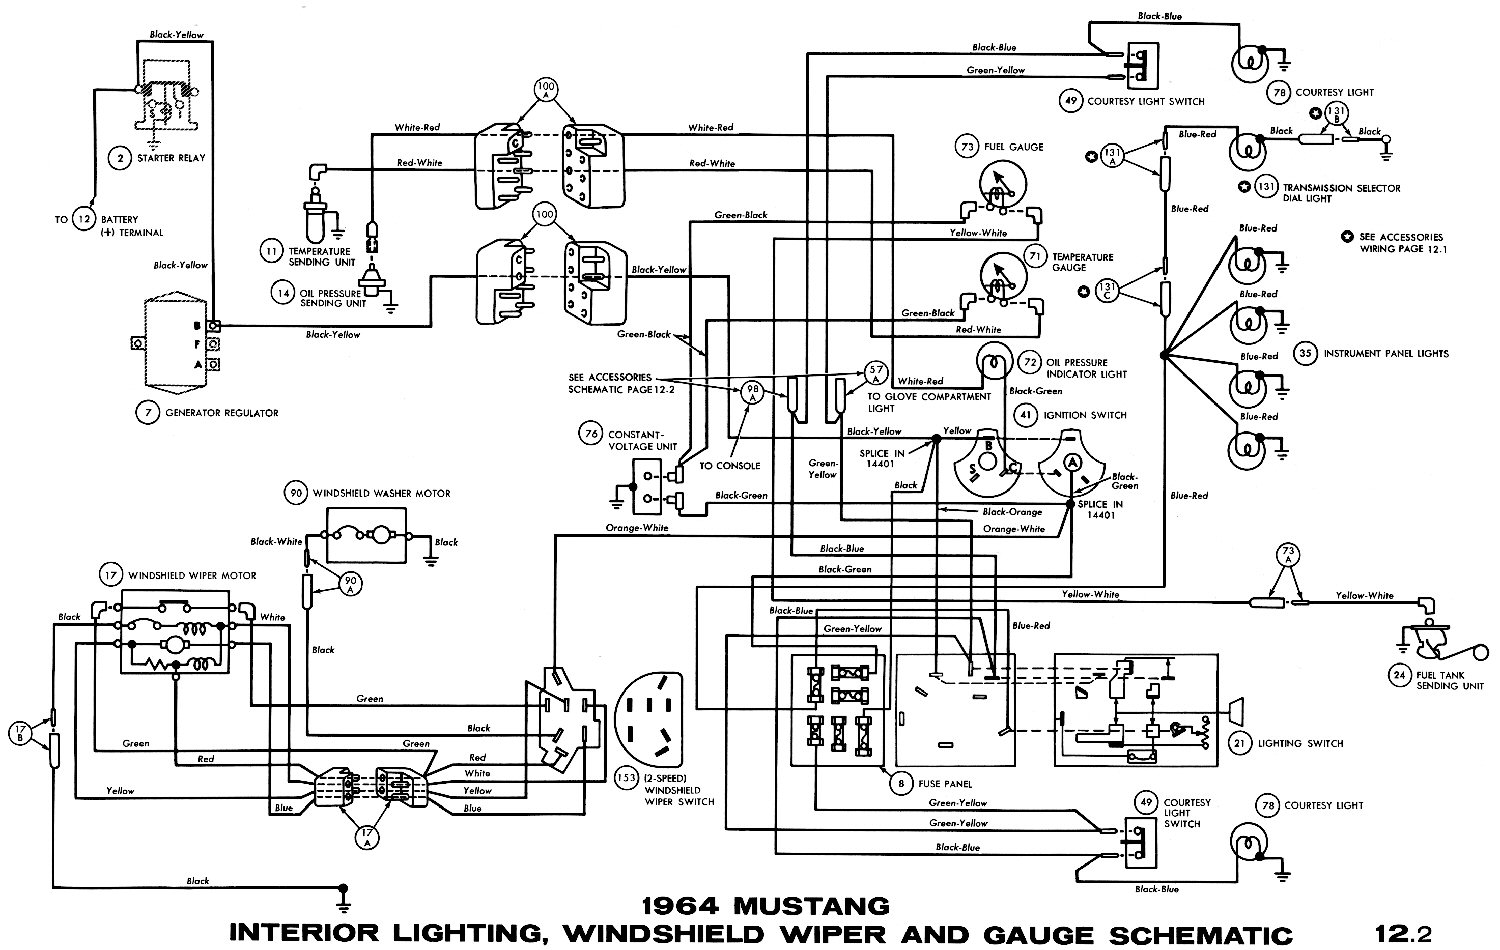 1964k mustang wiring diagrams mustang engine diagram \u2022 free wiring PCM Mustang Football at bayanpartner.co